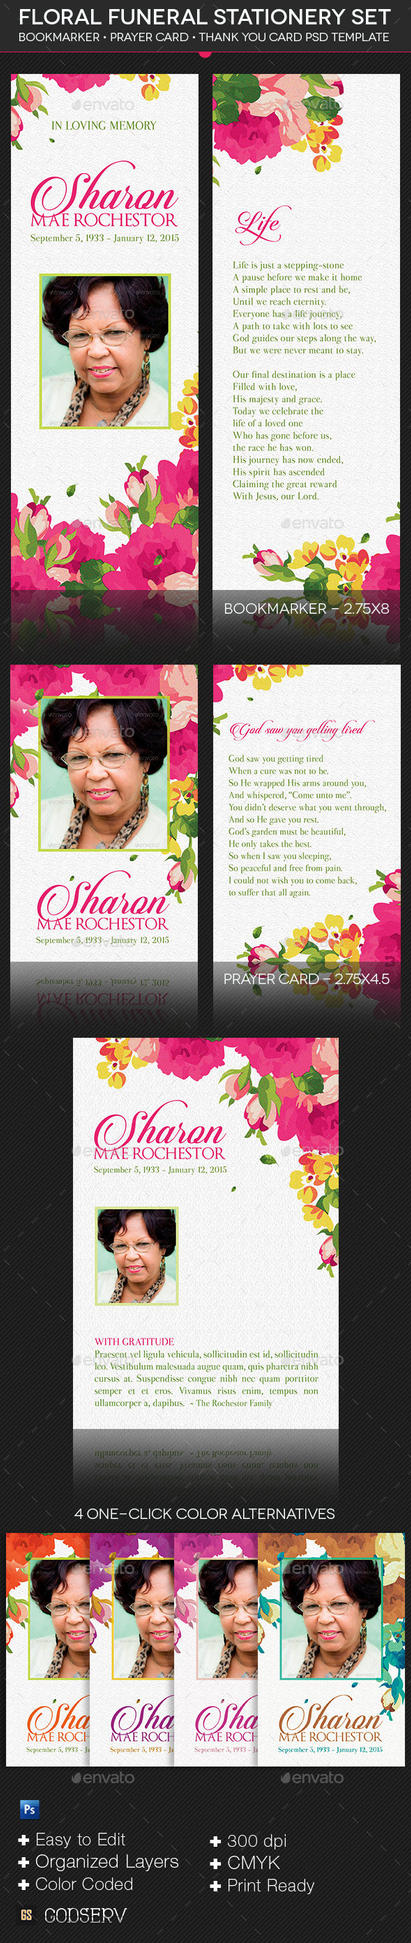 Floral Funeral Stationery Template Set by Godserv